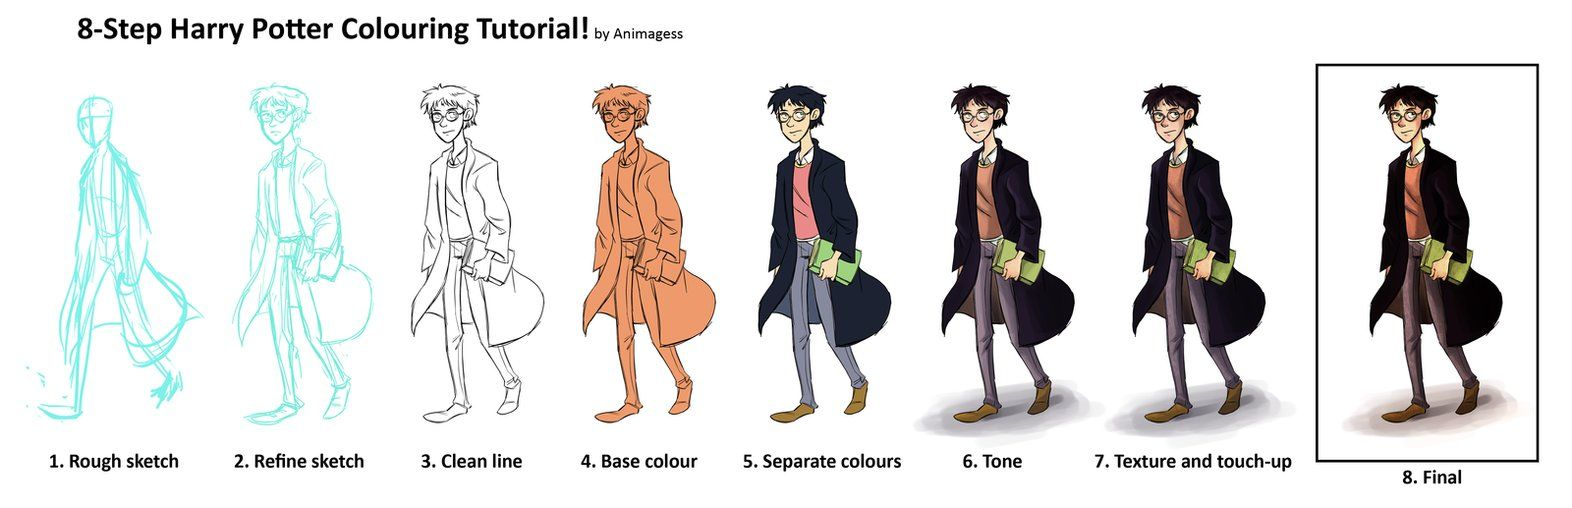 harry potter coloring tutorial by animagess deviantart com on